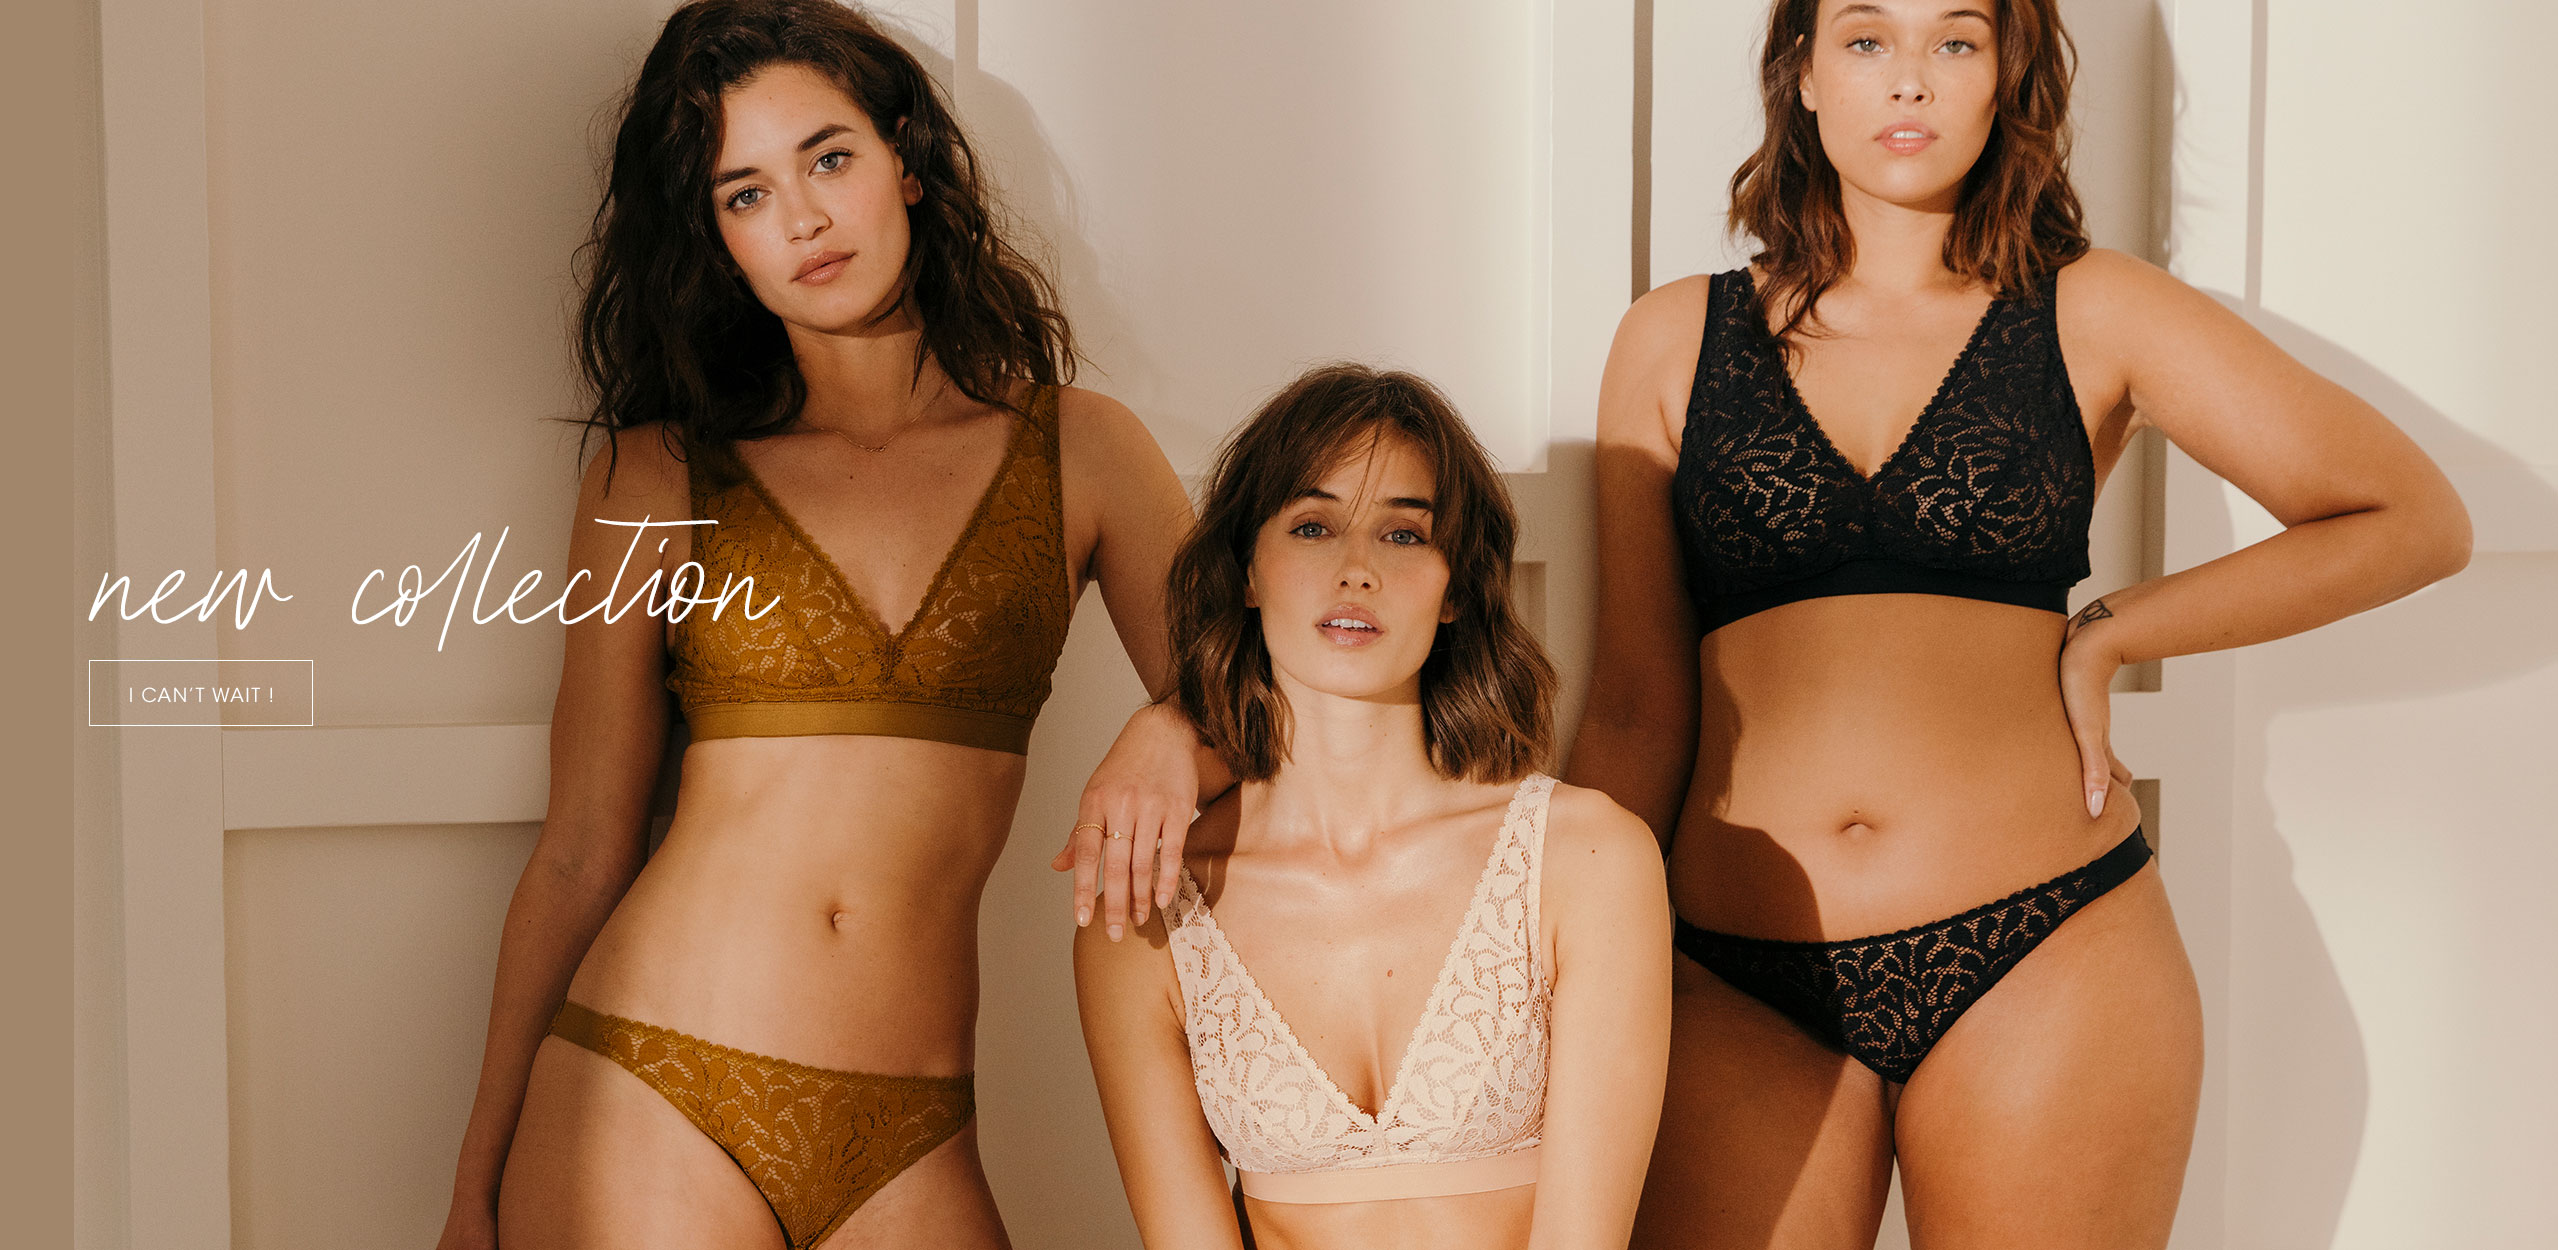 New Collection - Online Exclusive